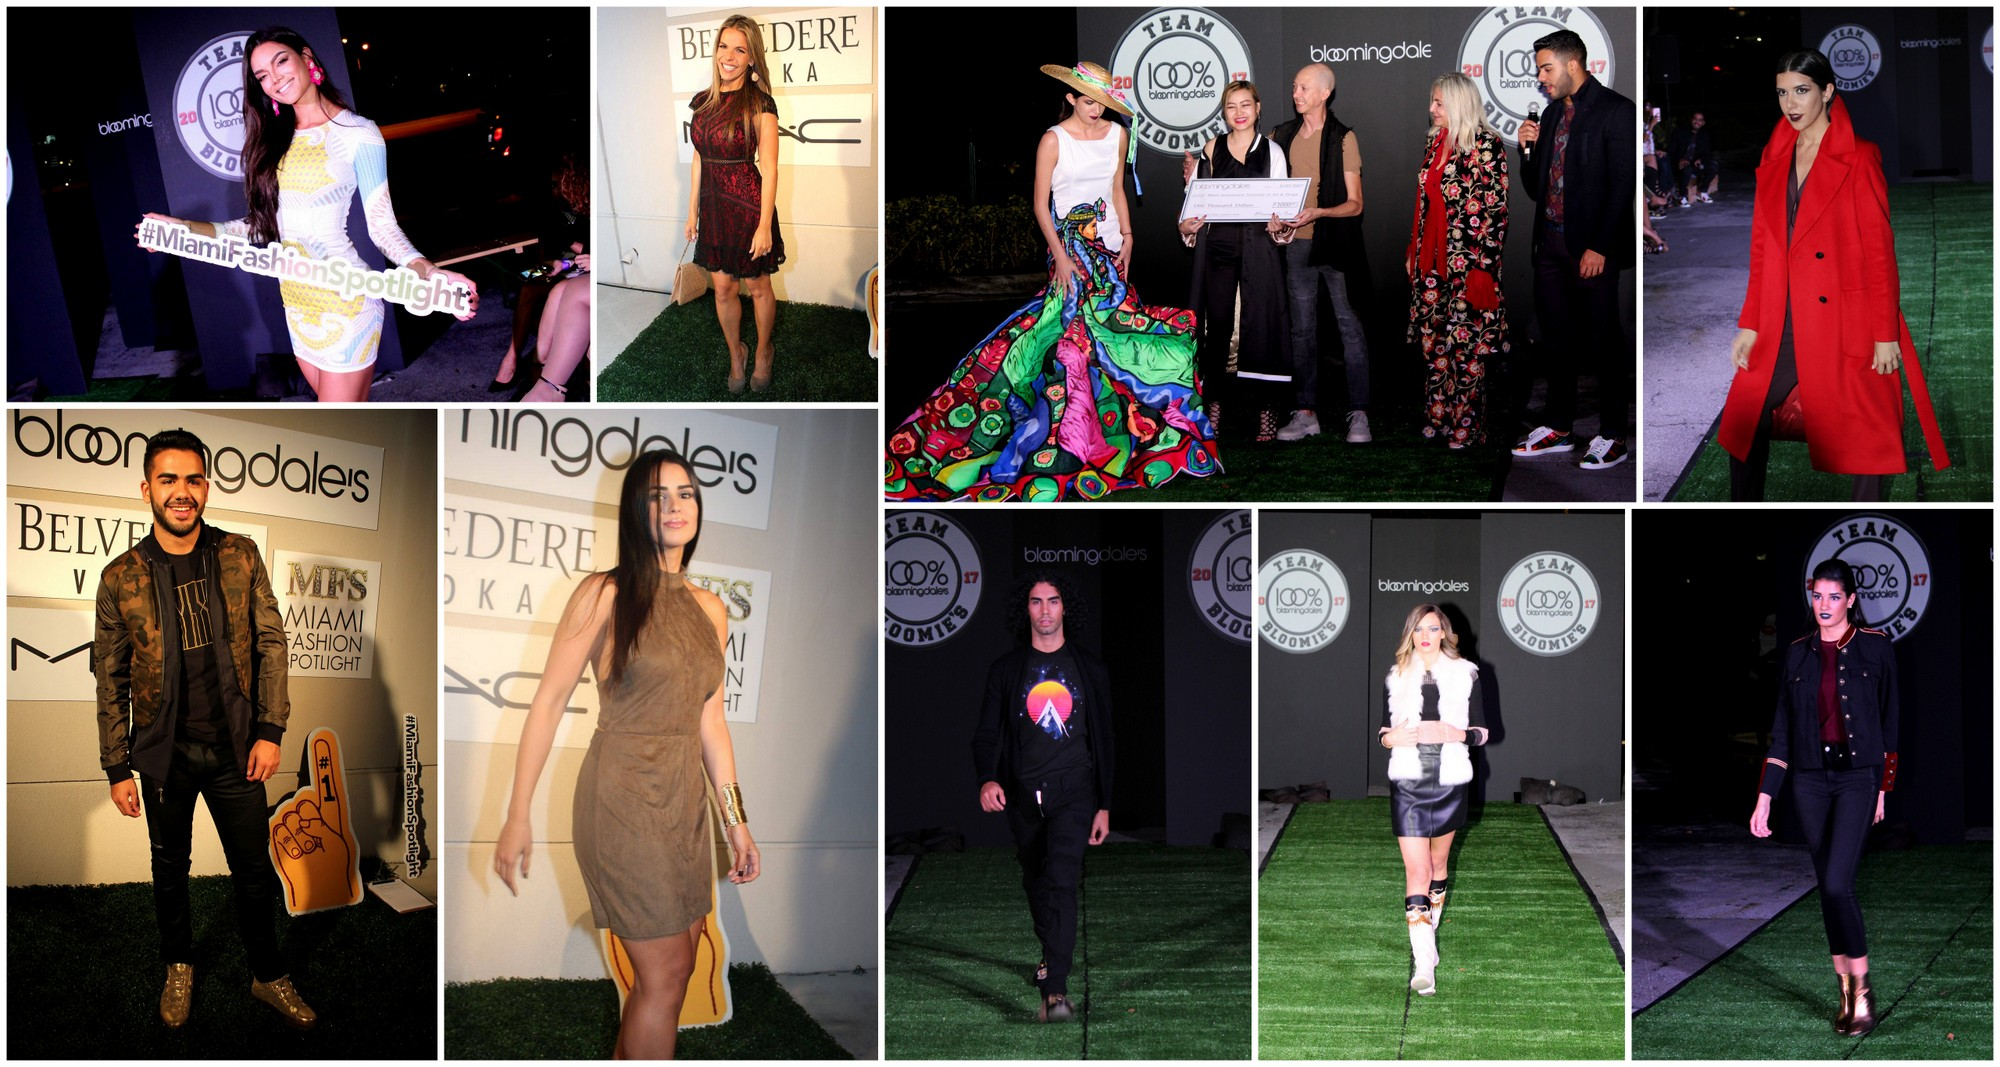 Bloomingdale's Aventura kicked off its 20th Anniversary Celebration with their annual Fall Fashion Show and the first ever Global Fashion Design Competition